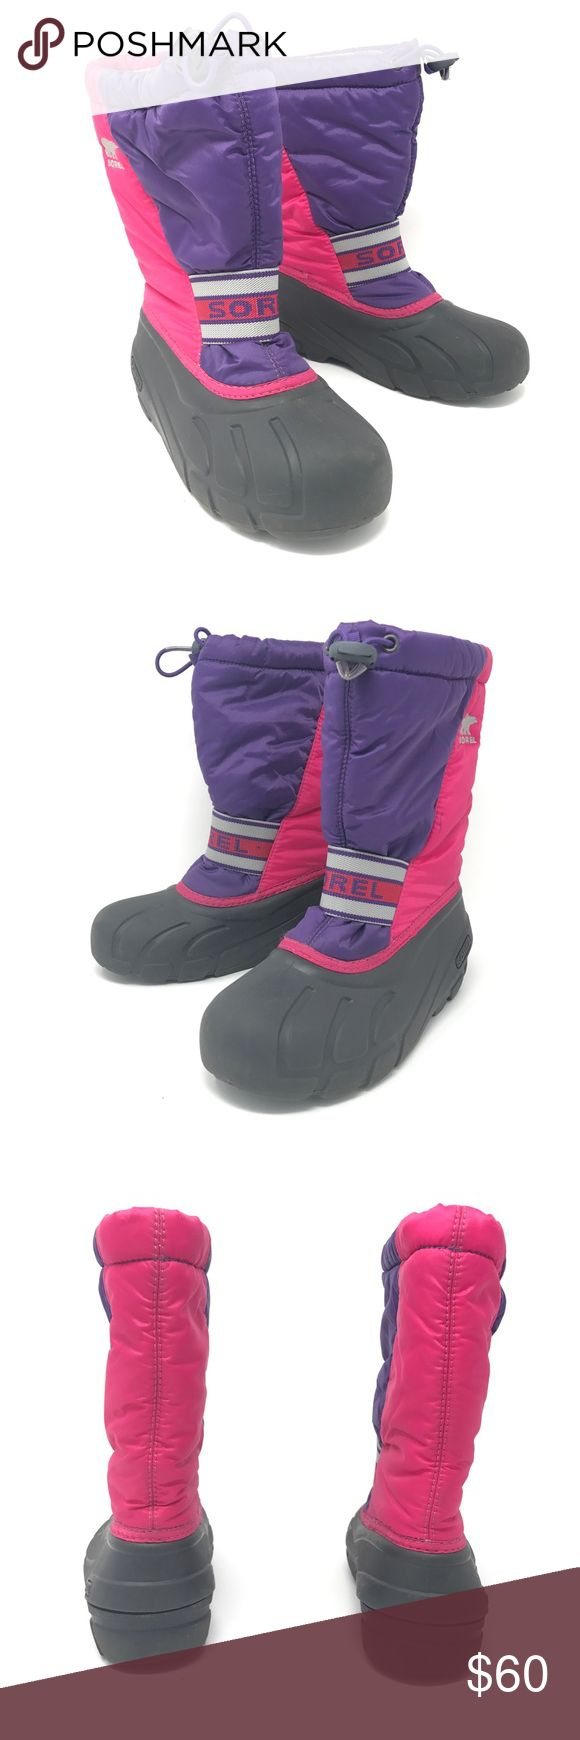 Sorel Snow Boots Cub Bright Rose Youth Sz 3 Sorel Snow Boots Cub Bright Rose Big Kids Youth Size 3 Pink & Purple Waterproof  Size: Youth Size 3 Color: Pink and Purple Style Name/Number: Cub In Bright Rose  In good preowned condition with no known major flaws and light overall wear, does have a couple marks on one boot on the pink part see images. Sorel Shoes Rain & Snow Boots